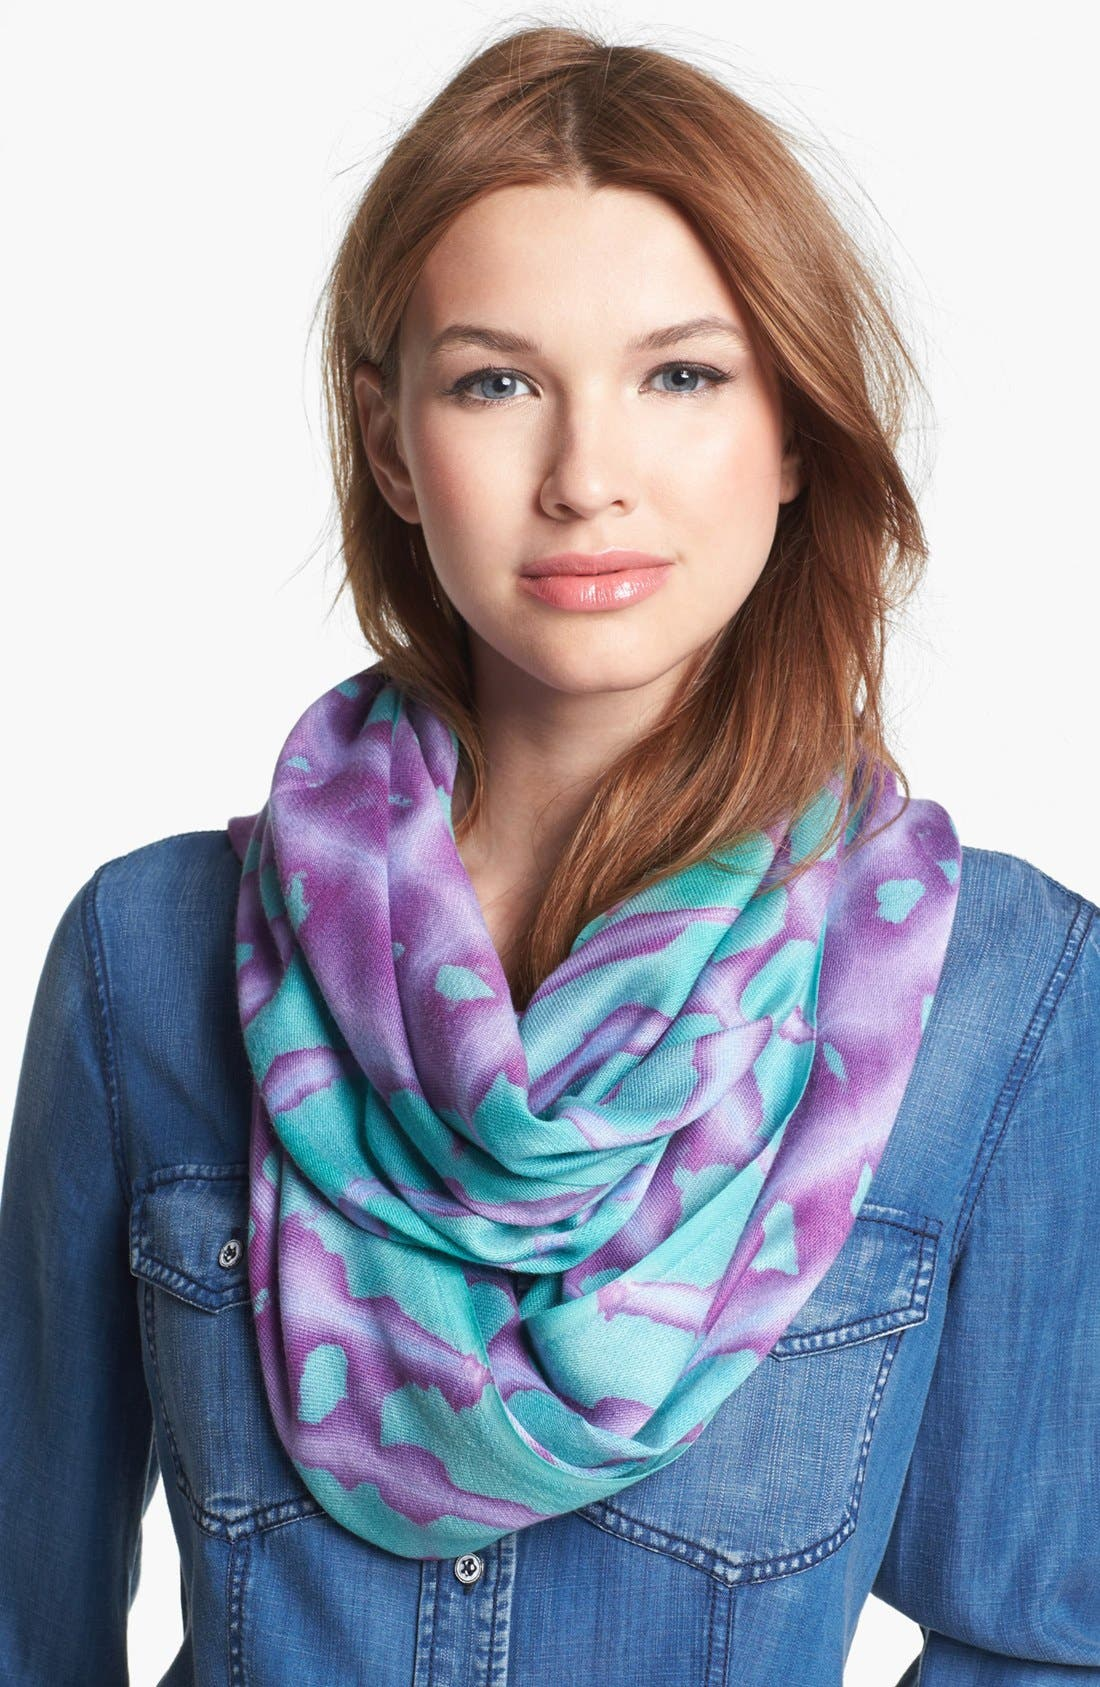 Alternate Image 1 Selected - Collection XIIX Tie Dye Infinity Scarf